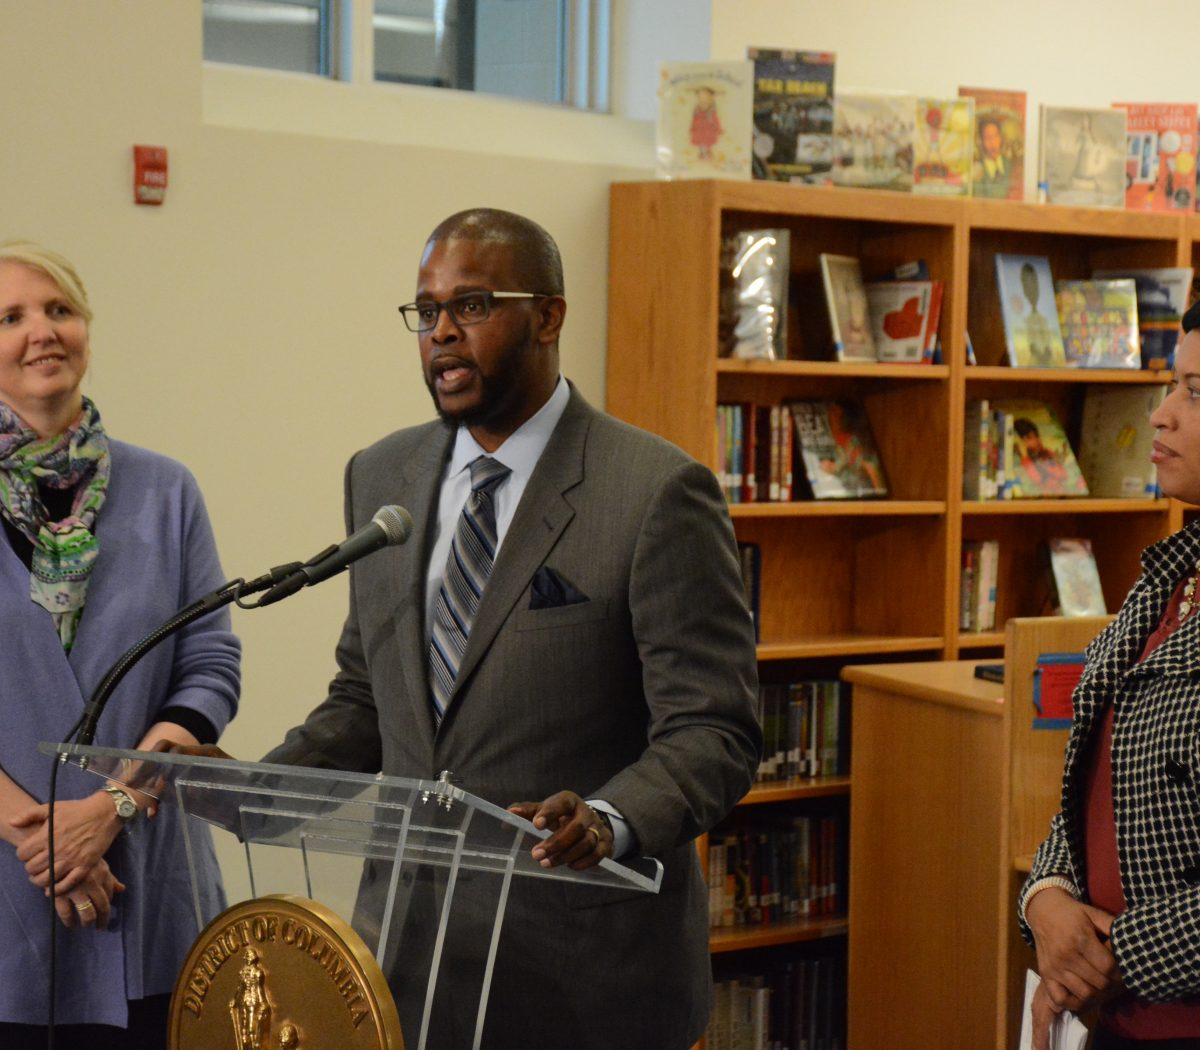 Mayor Muriel Bowser and Deputy Mayor of Education Jennifer Niles introduce Antwan Wilson as the new DCPS Chancellor at a press conference held at Alice Deal Middle School in Northwest on February 1, 2017. /Photo by Roy Lewis